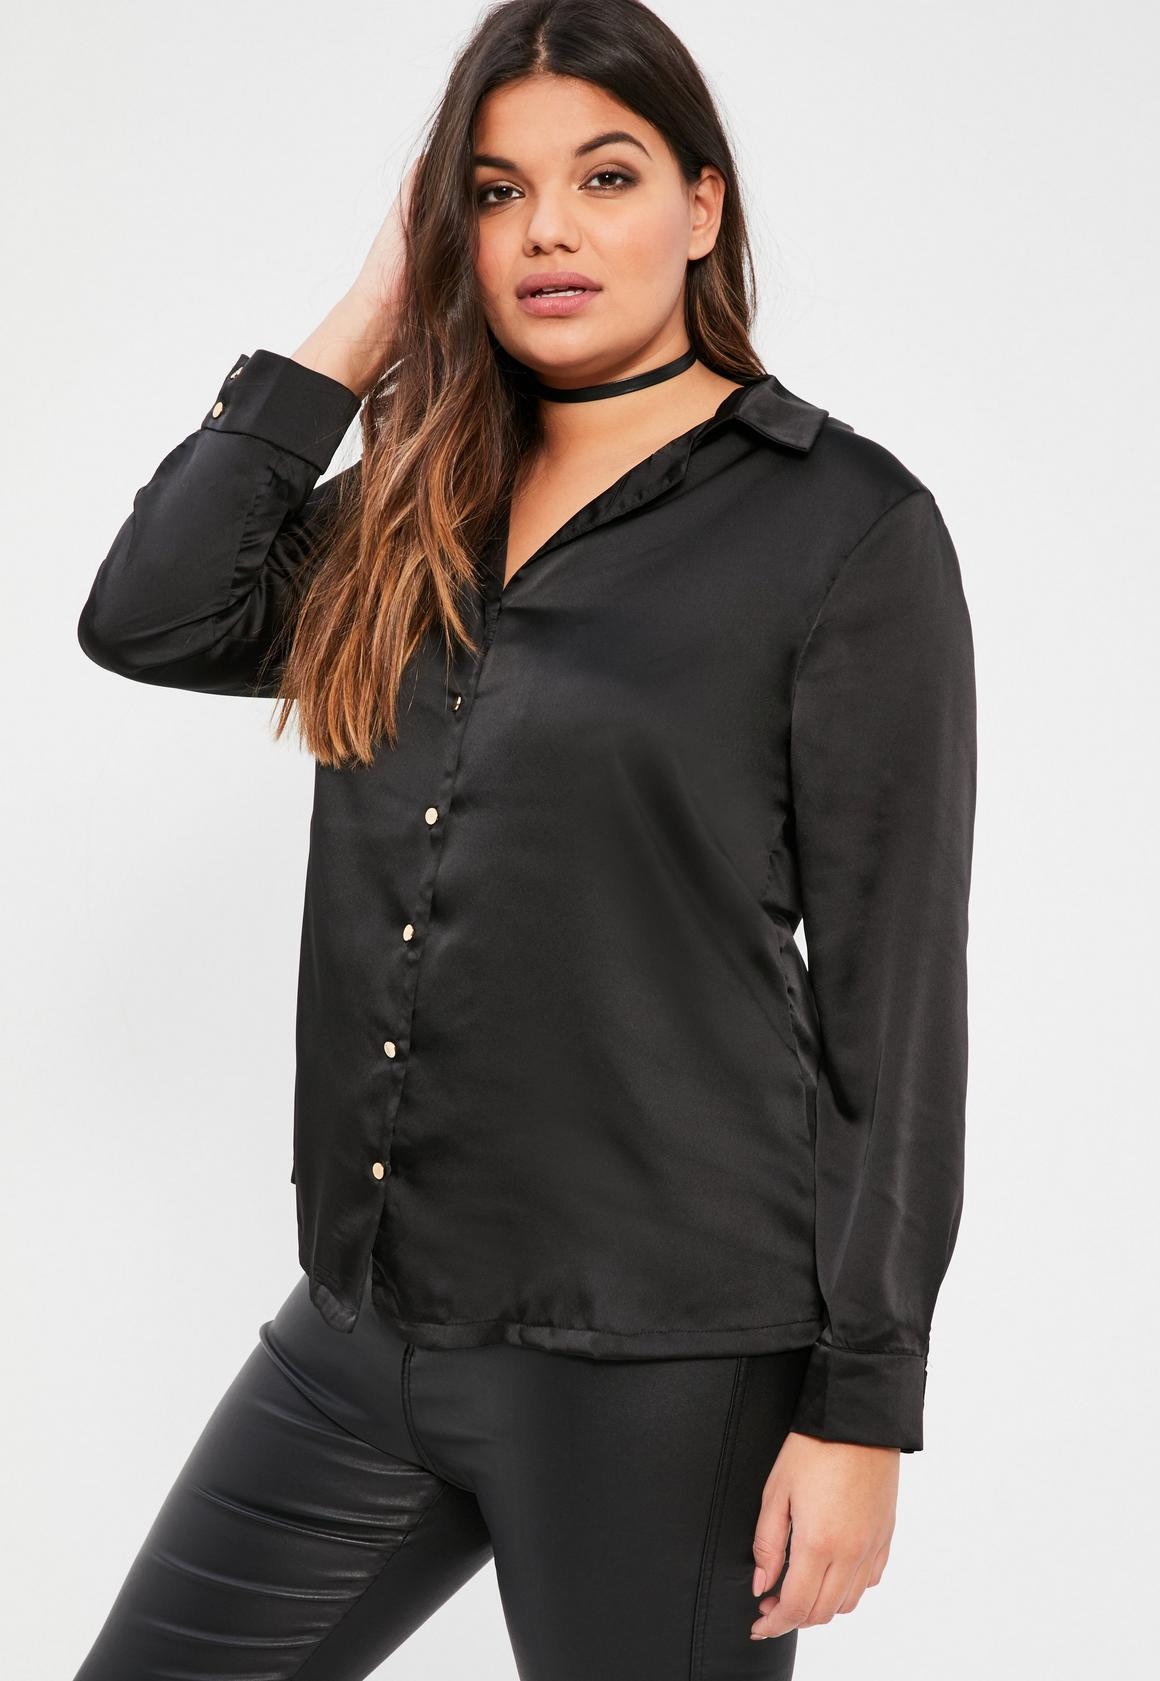 Plus Size Black Satin Blouse - Missguided